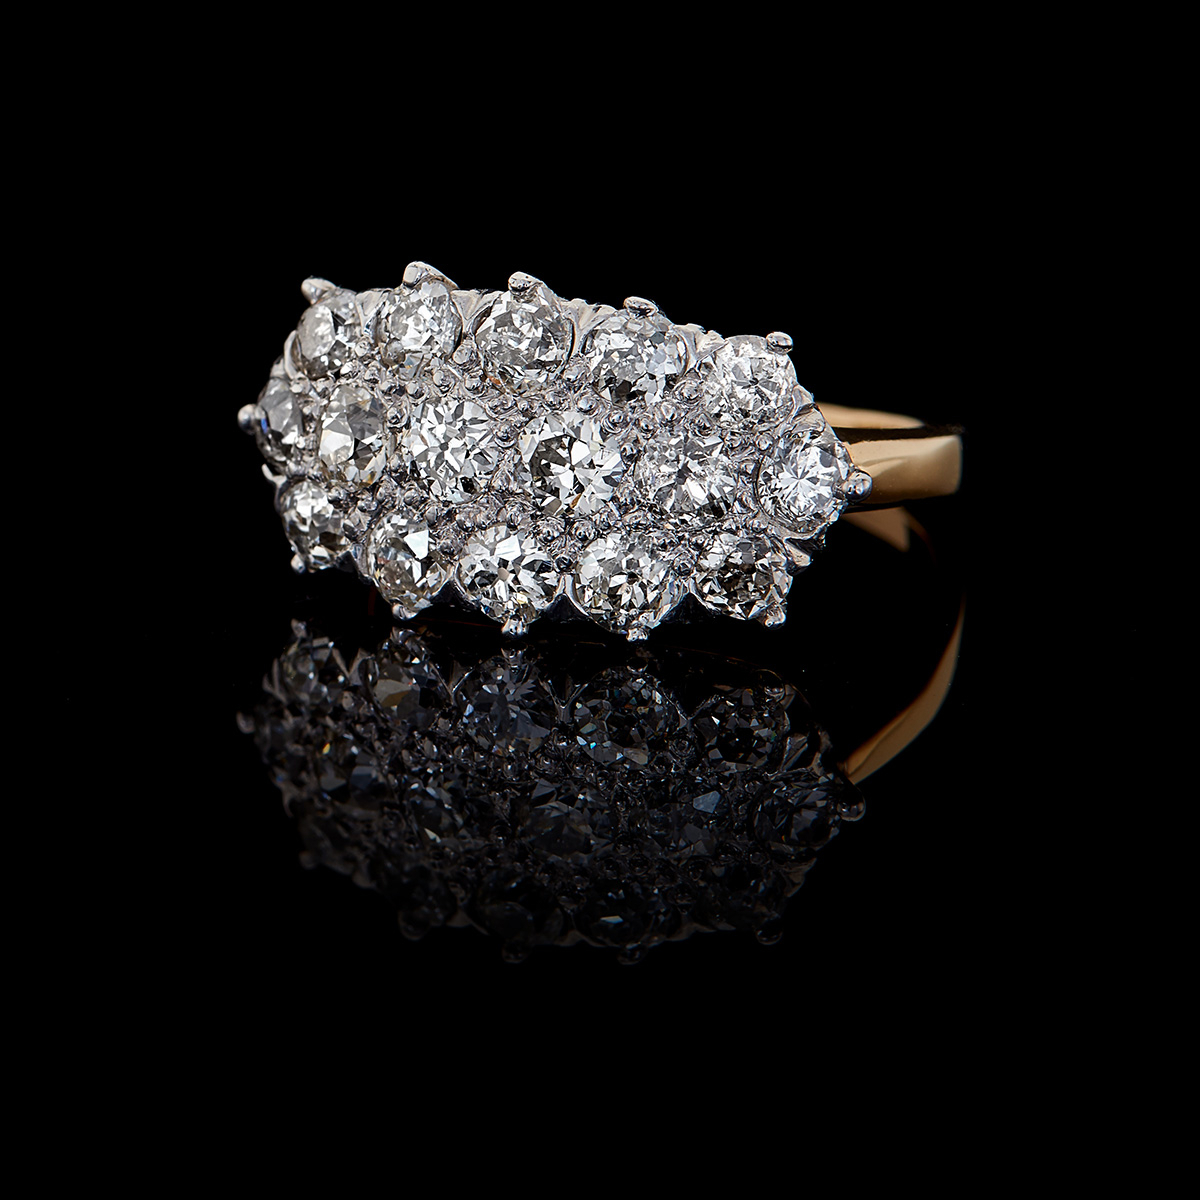 Vintage, Antique & Estate Rings | Calhoun Jewelers Intended For Best And Newest Diamond Vintage Style Three Row Anniversary Bands In White Gold (View 13 of 25)